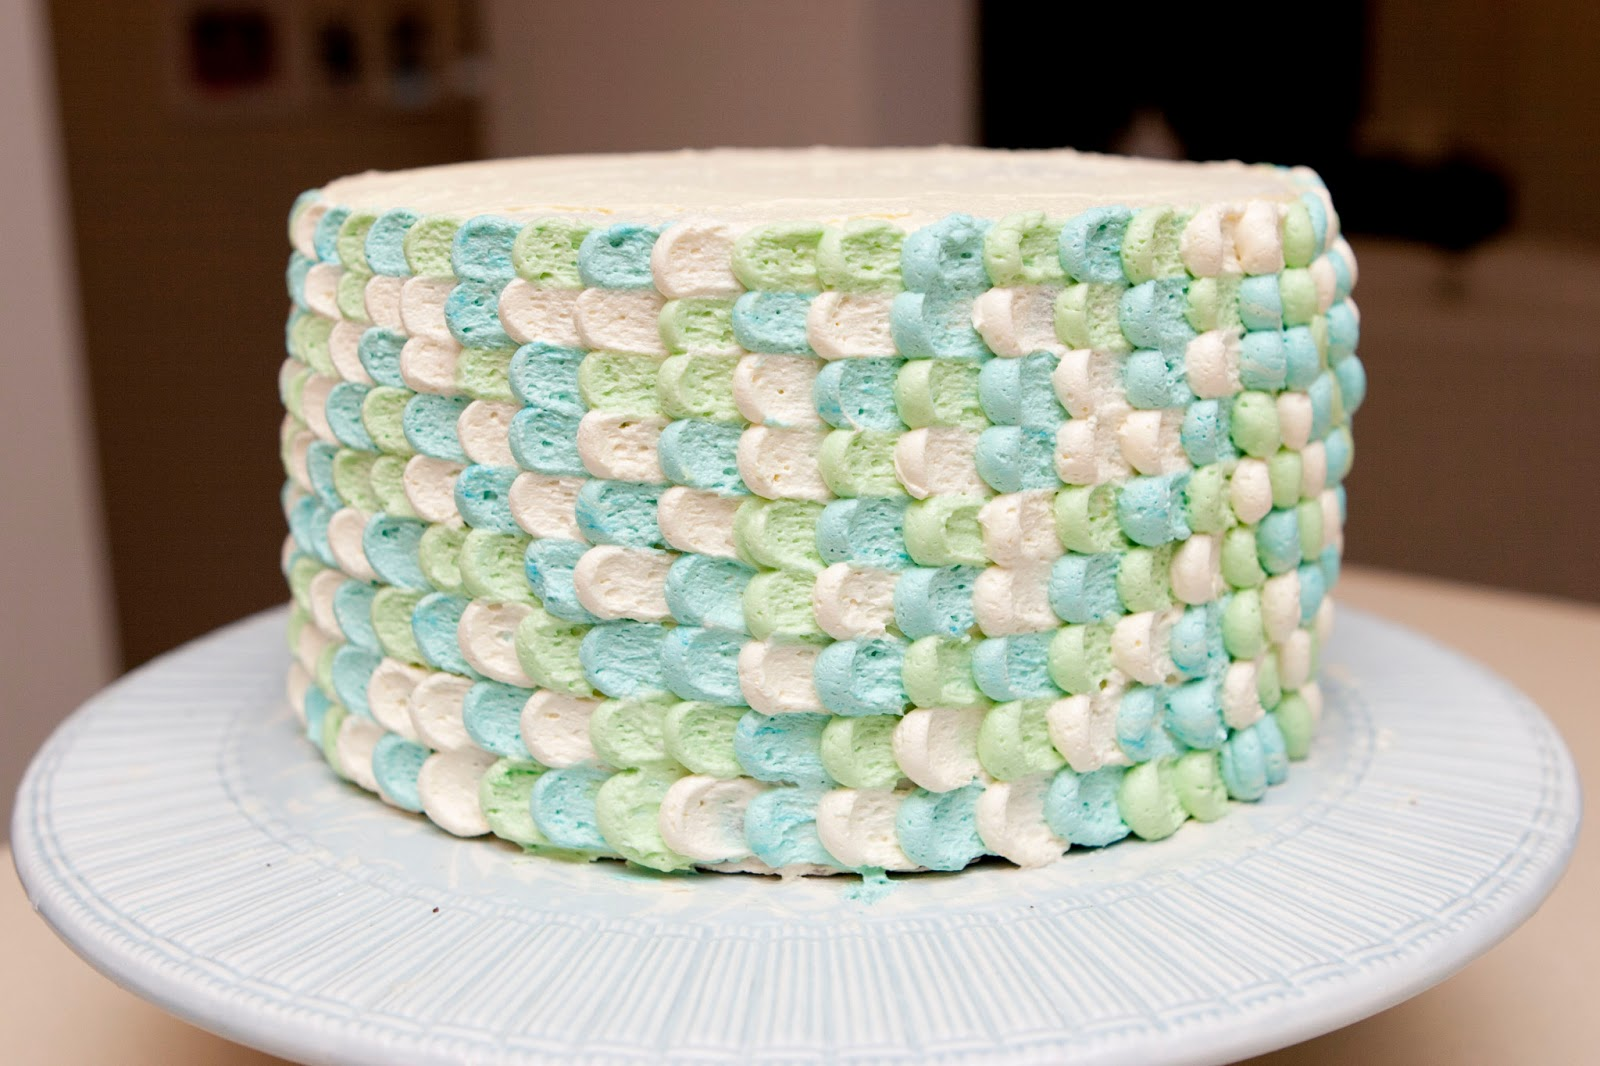 How to Make a Cake Without Scales How to Make a Cake Without Scales new picture